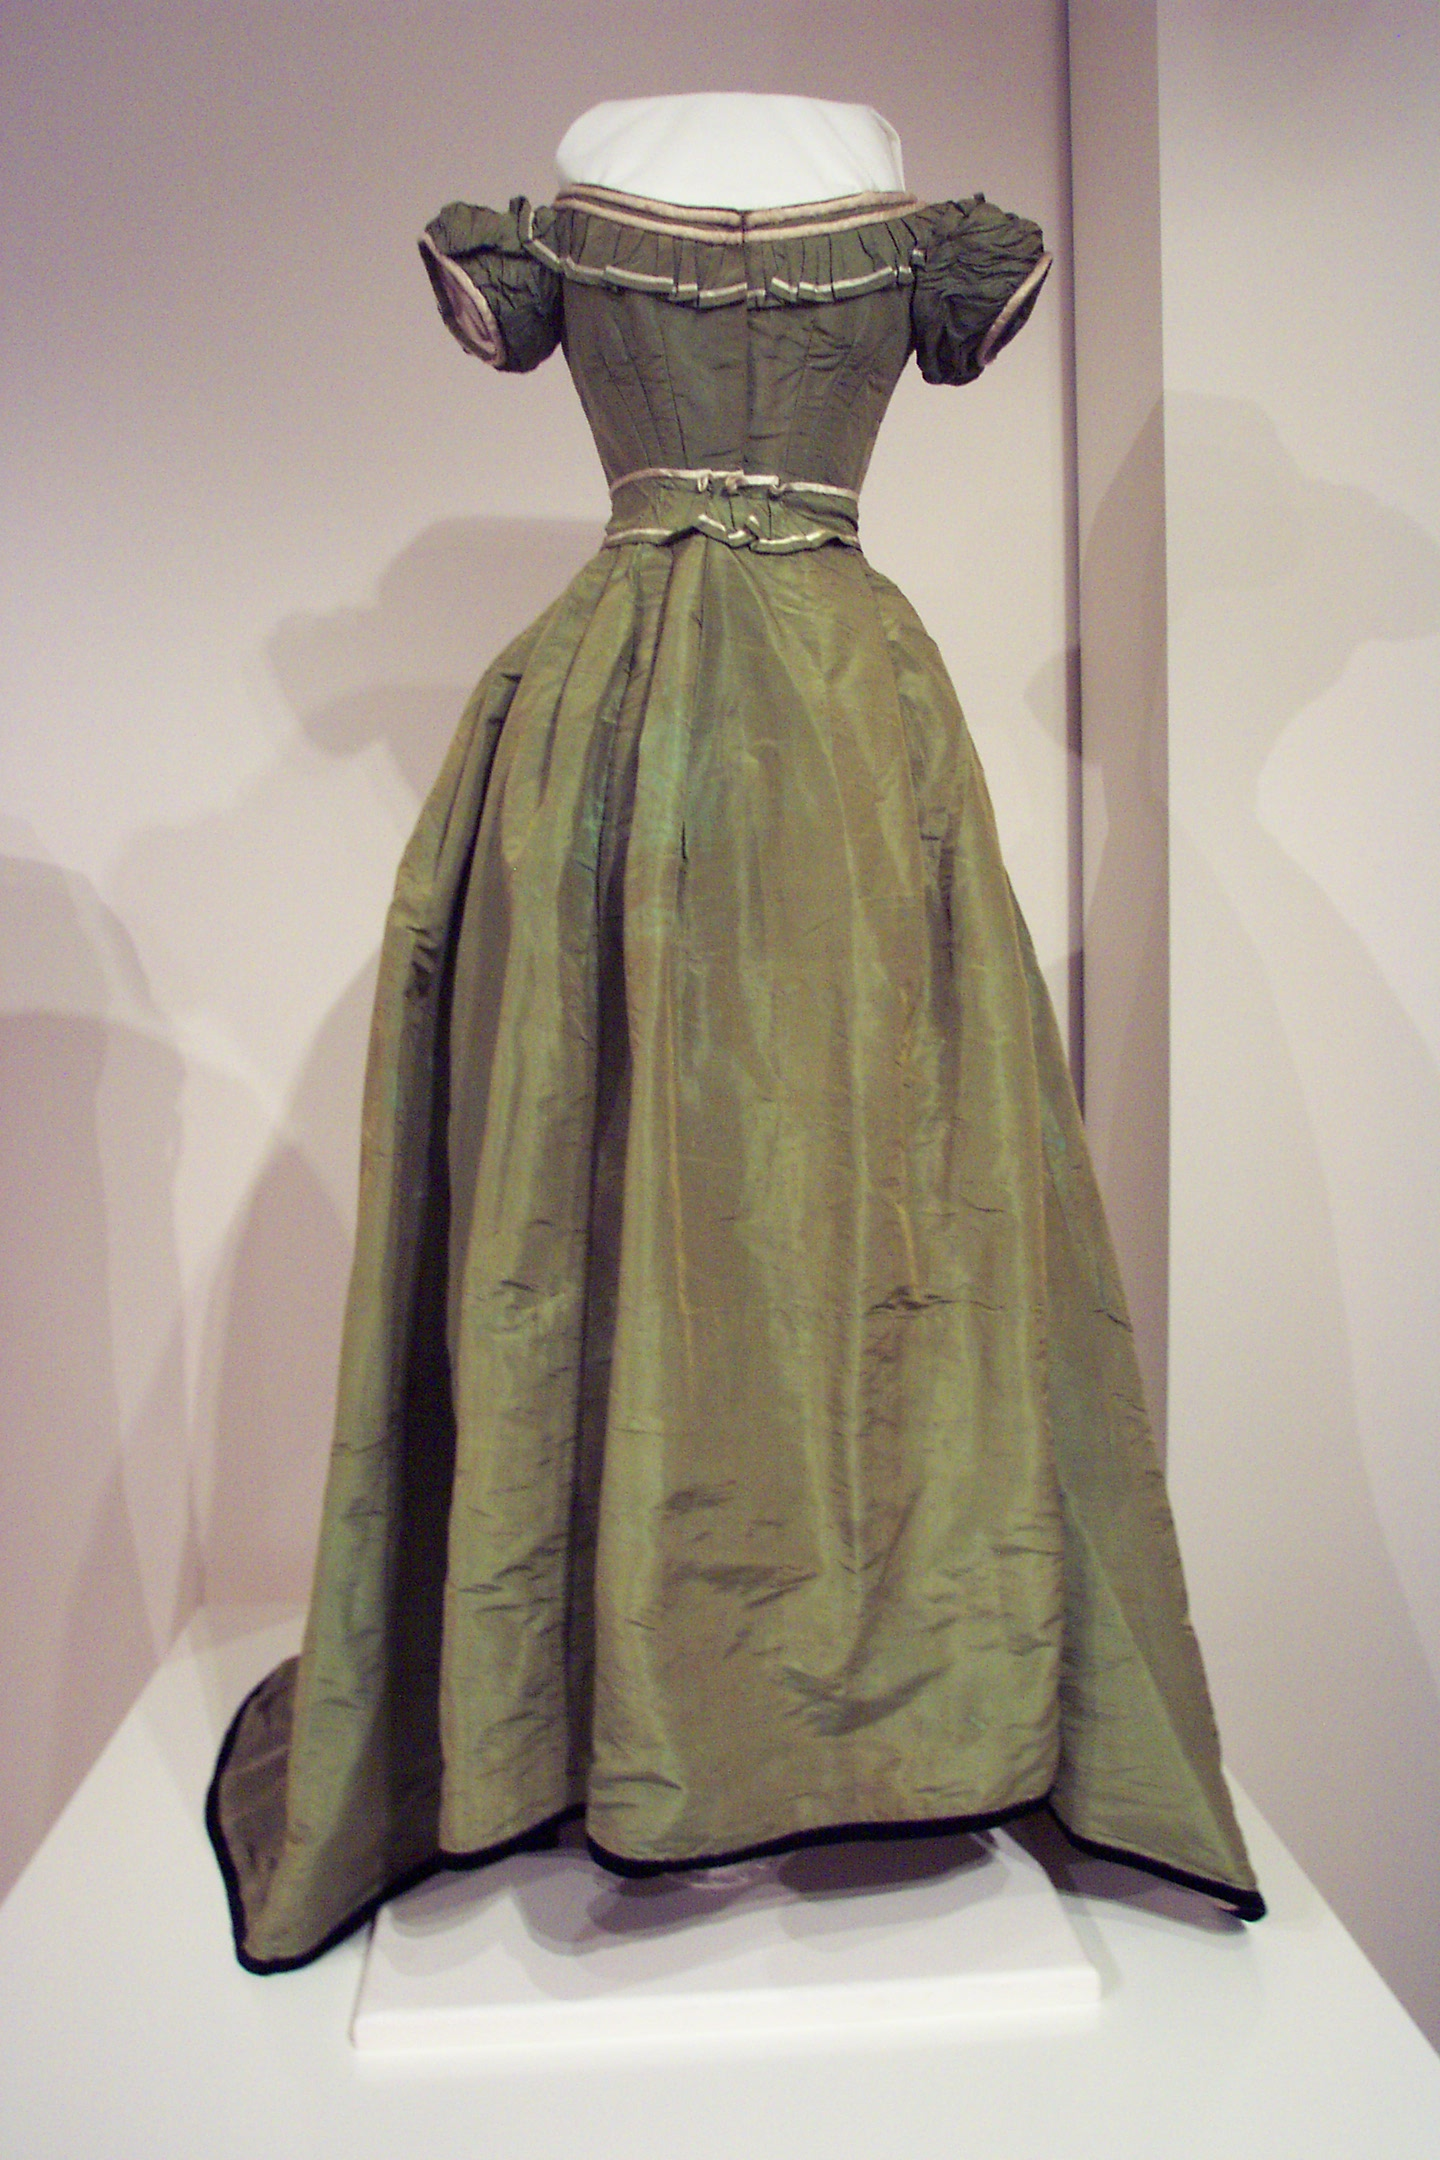 Mary Fenton Whitelaw's Ball Gown (1867) Image: Gold Museum Collection (91.0431)